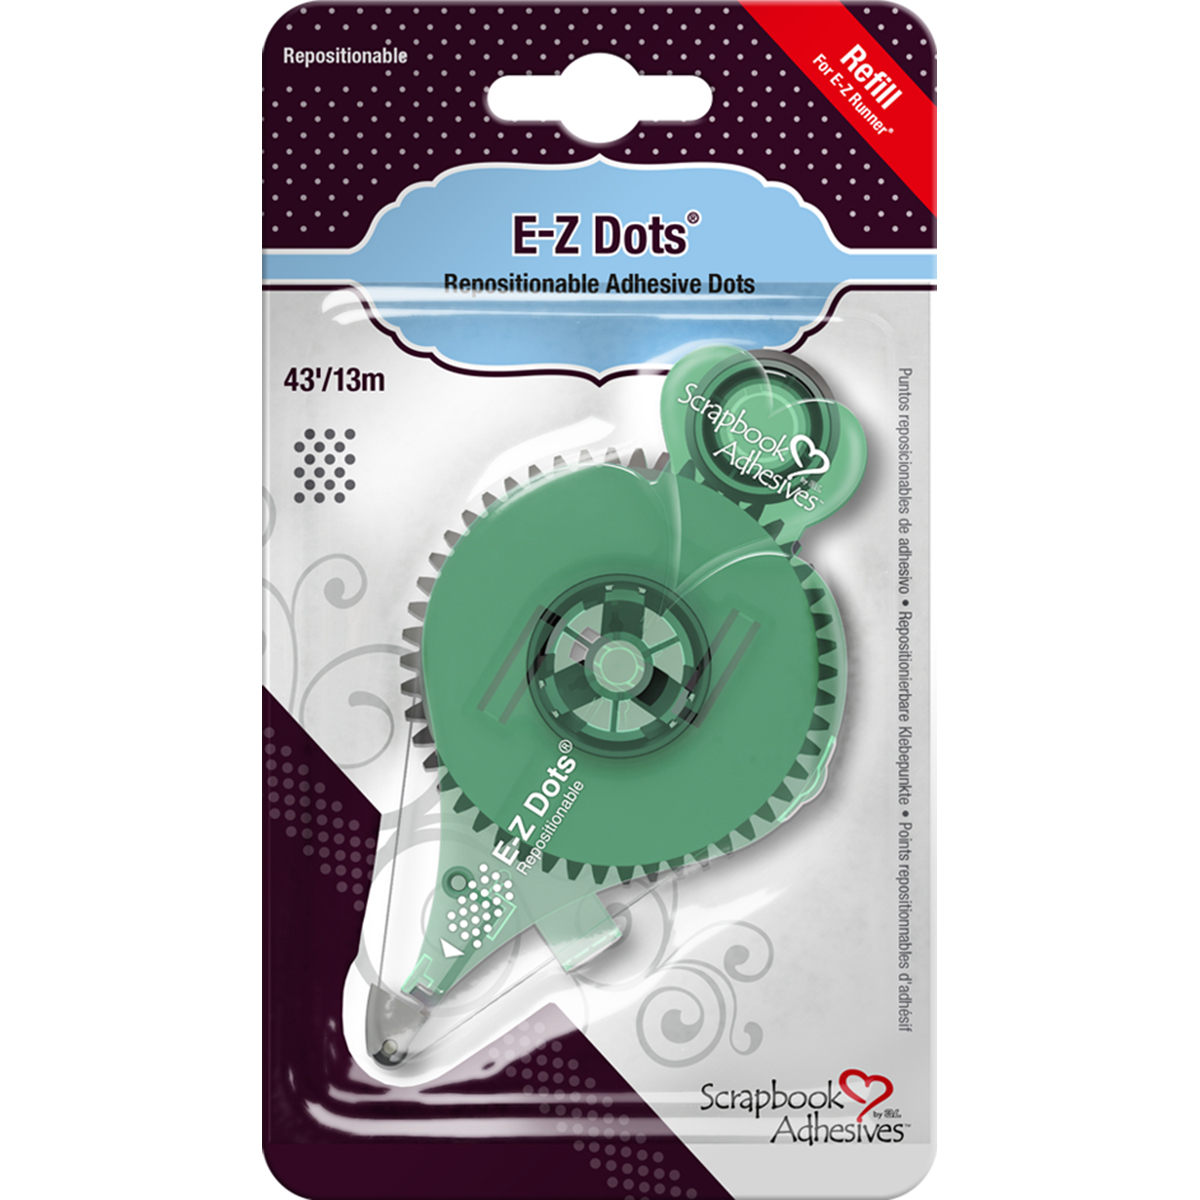 Scrapbook Adhesives E-Z Dots Refill-Repositionable 43' Use In 12046